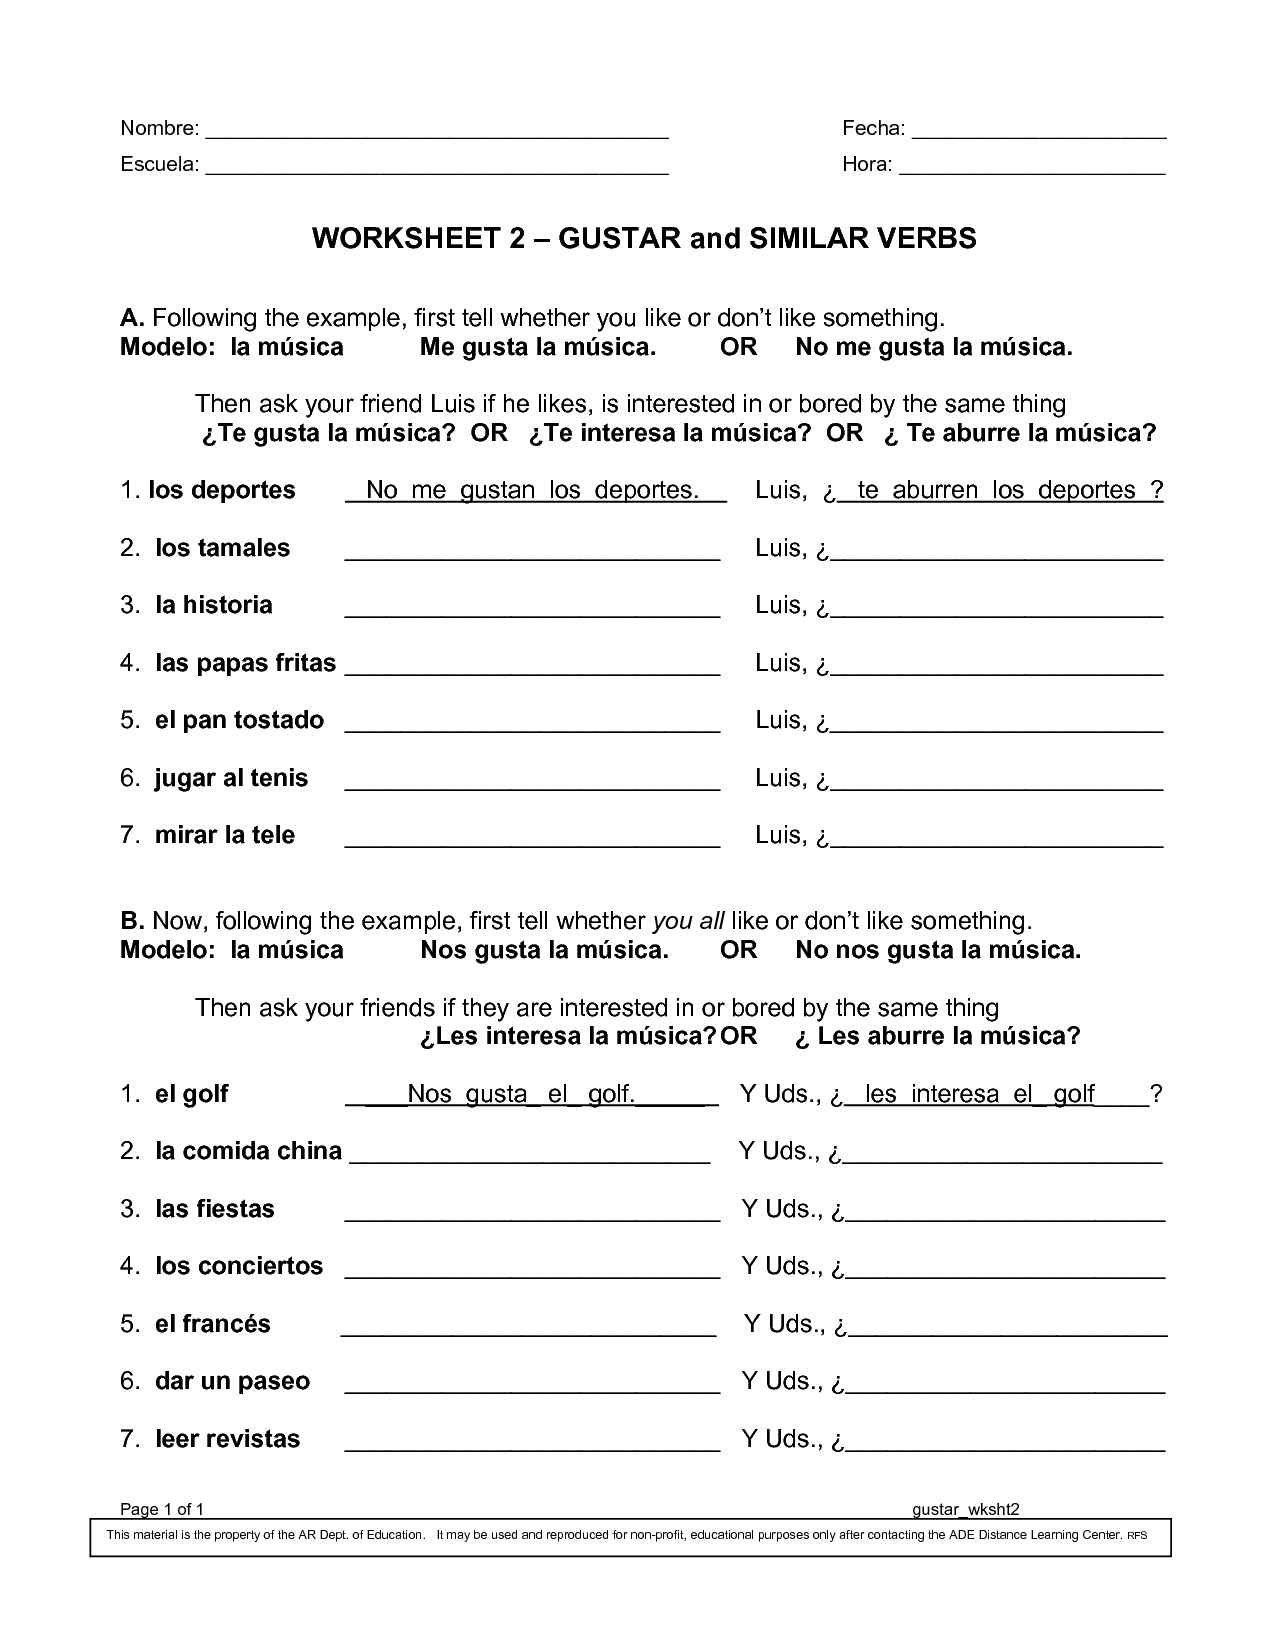 WORKSHEET 2 - GUSTAR and SIMILAR VERBS - PDF | Español | Pinterest ...